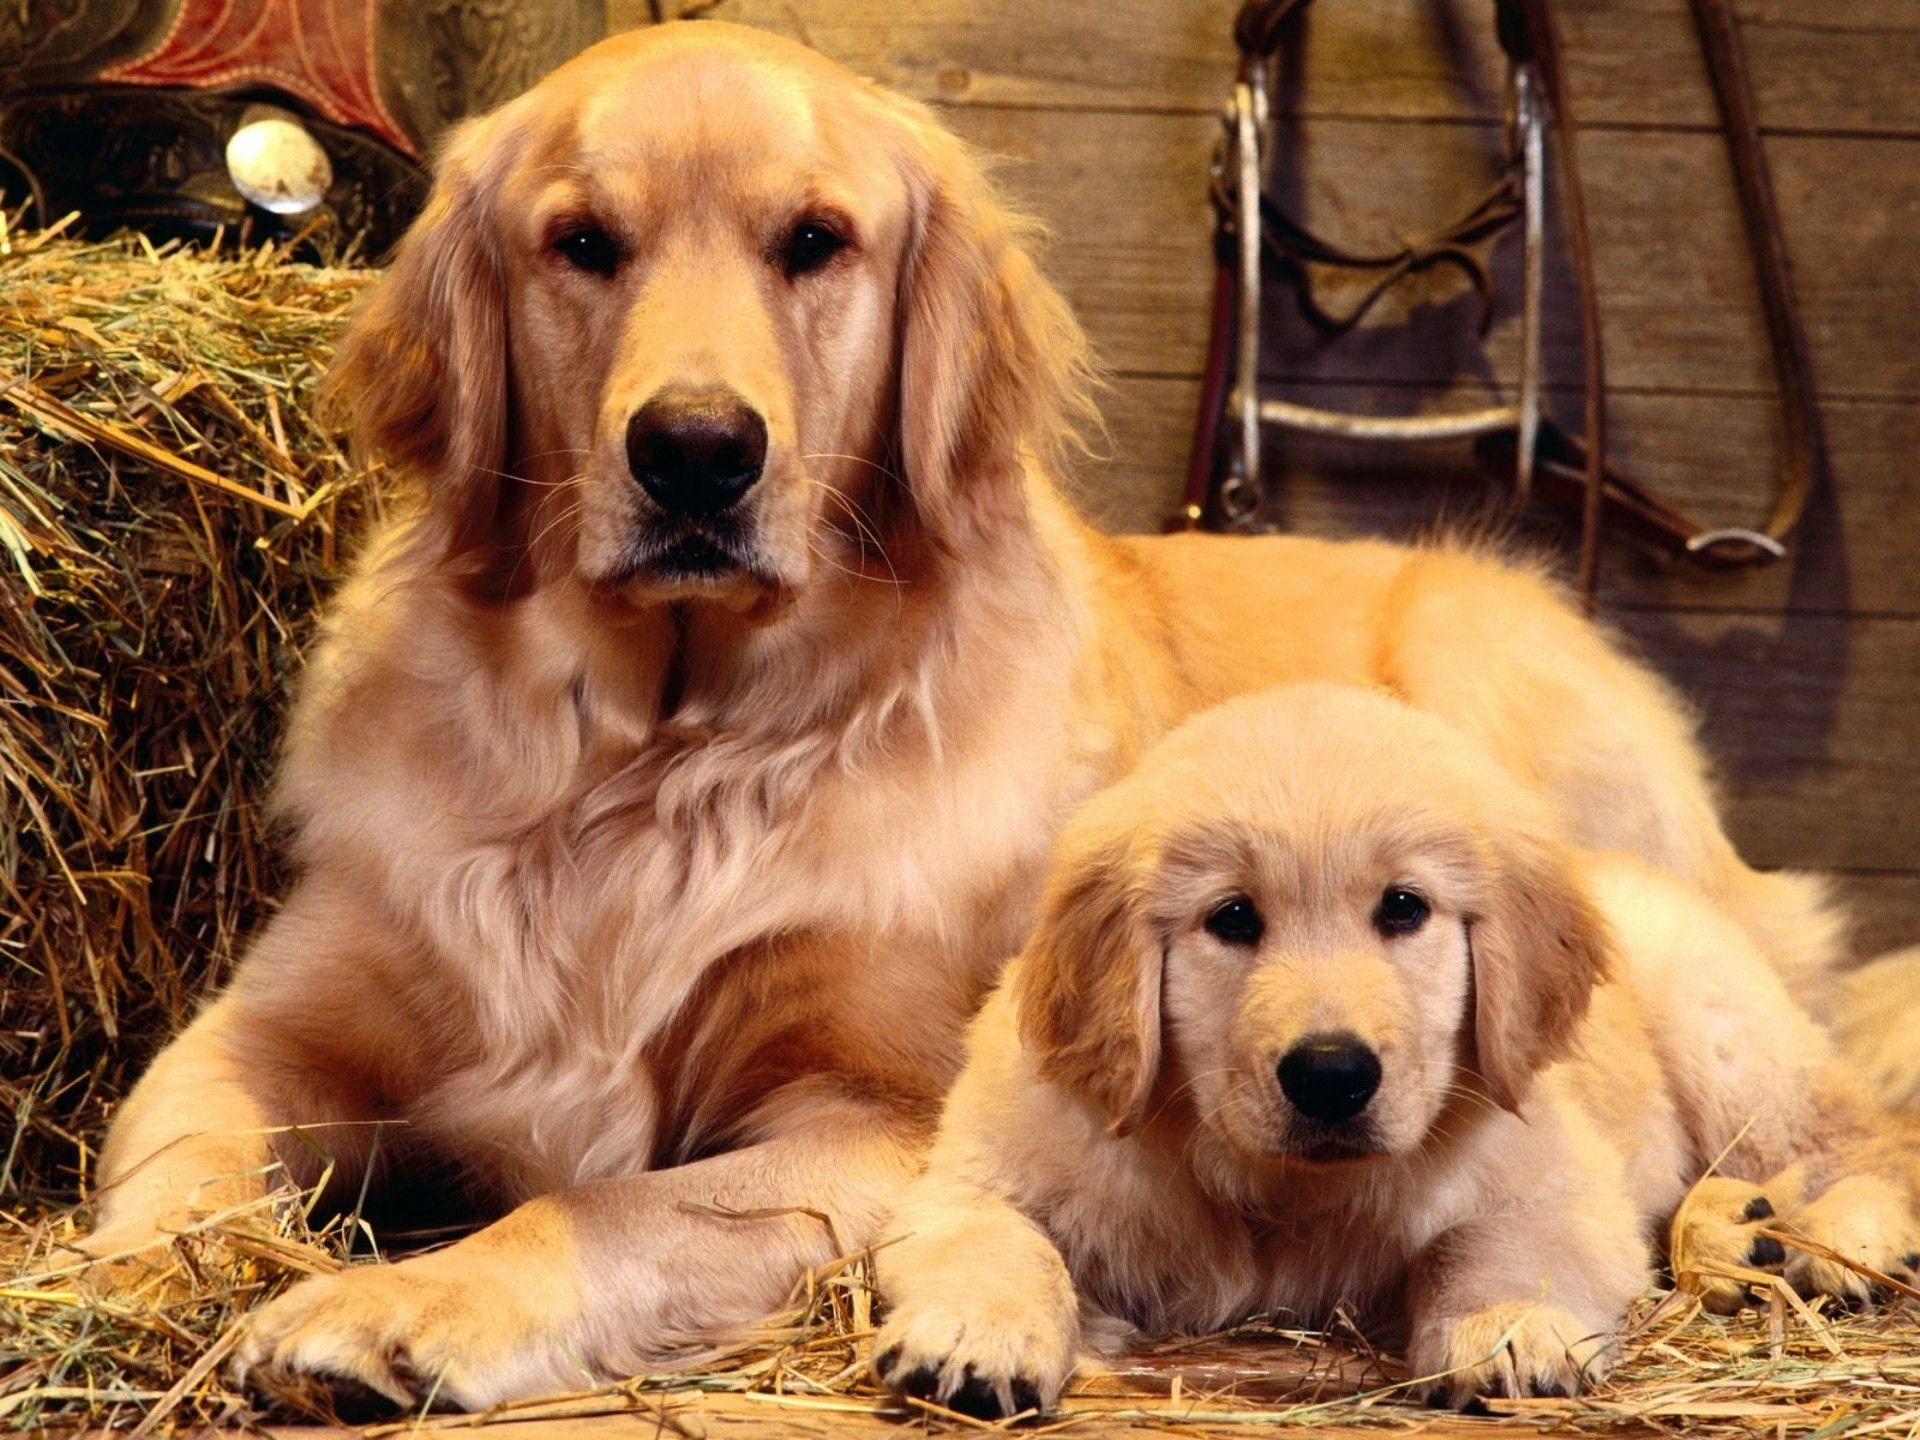 Animal Golden Retriever Dog Puppy Retriever Wallpaper Retriever Puppy Dogs Golden Retriever Popular Dog Breeds